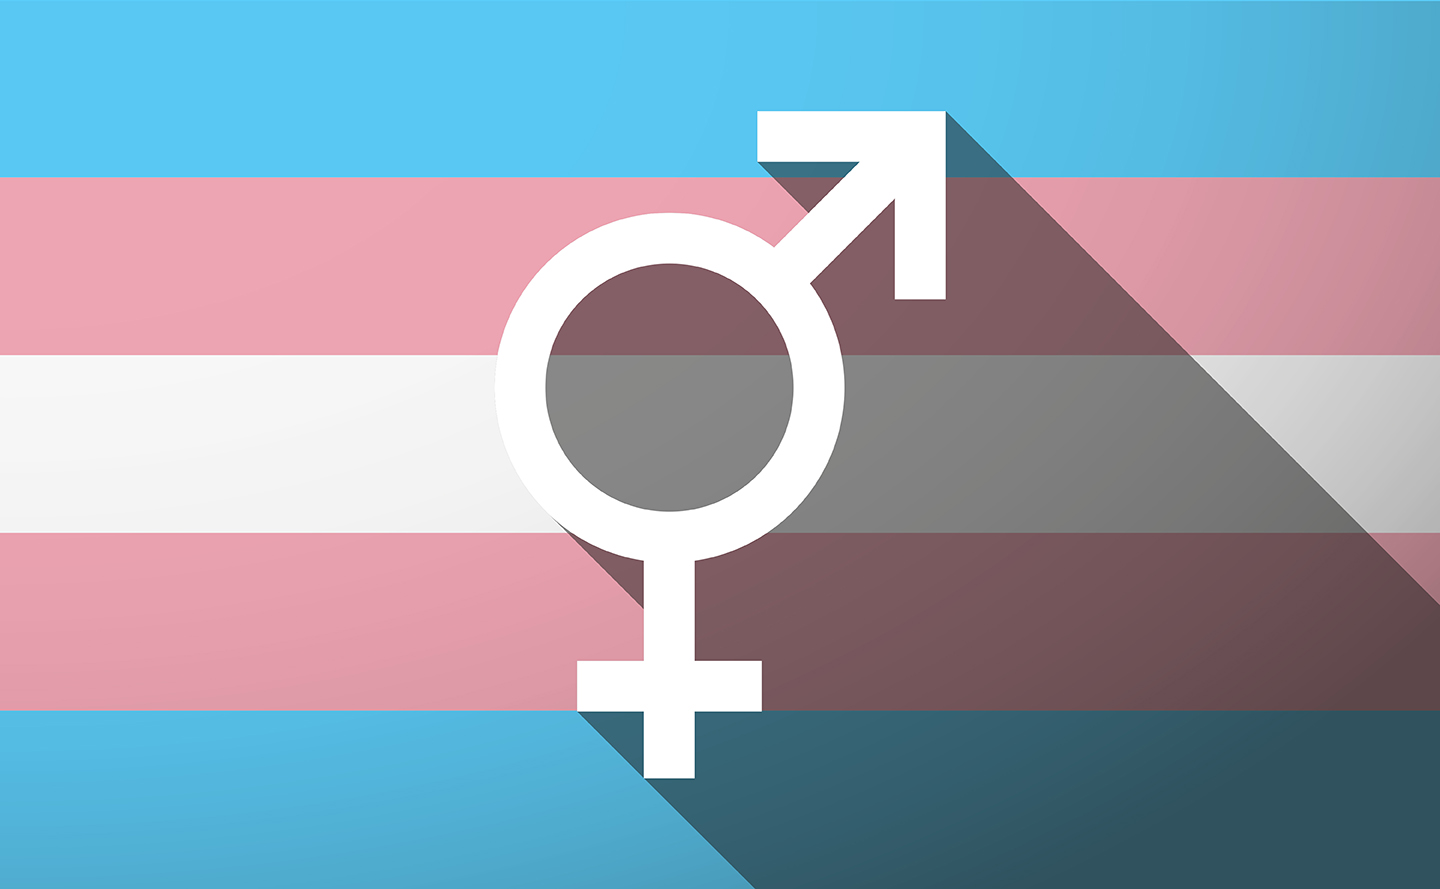 image of a transgender flag and symbol